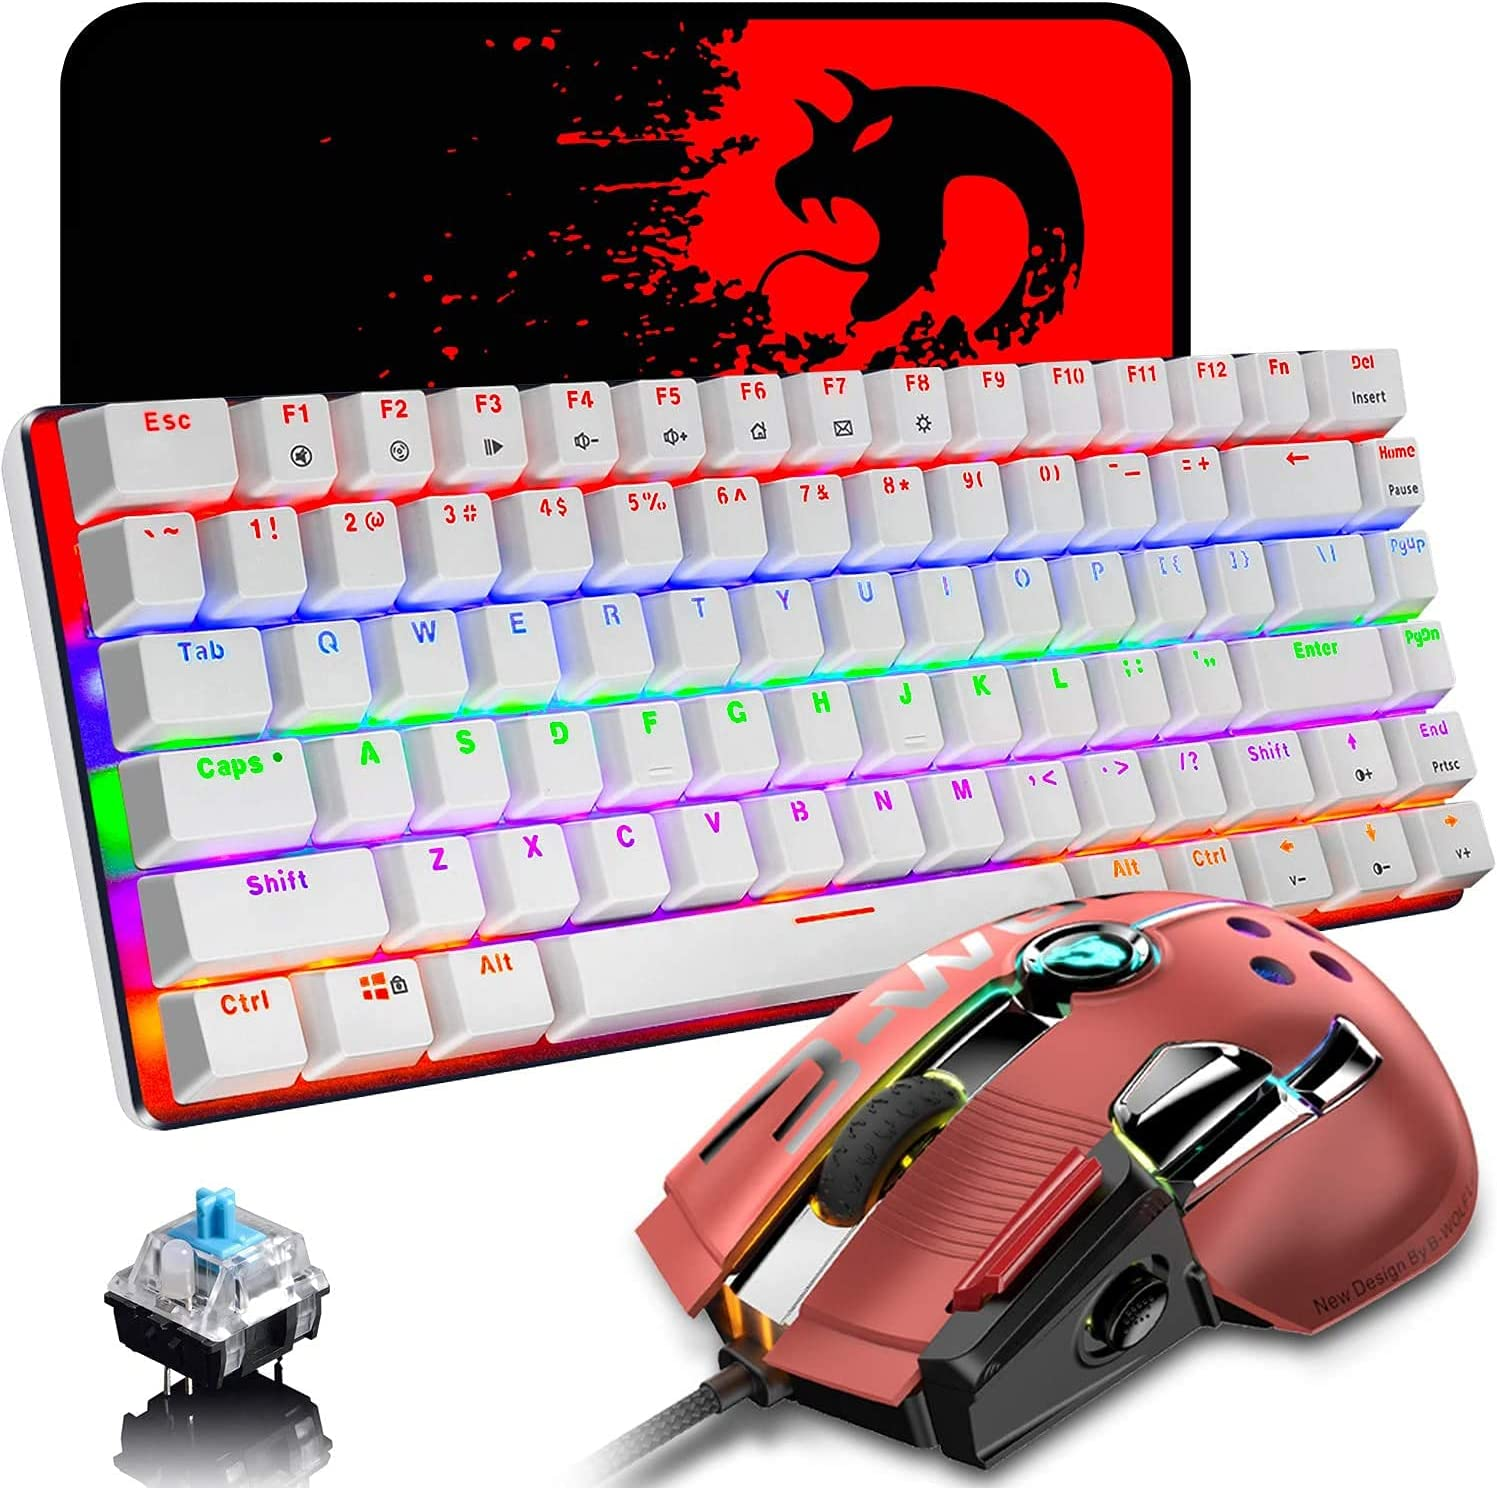 Mechanical Keyboard and Mouse Combo Wired 82 Keys Rainbow Backlit Gaming Keyboard Blue Switch, 12000 DPI with 12 Button Programmable Mouse Compatible with Laptop PC Gamer Computer Typist Desktop